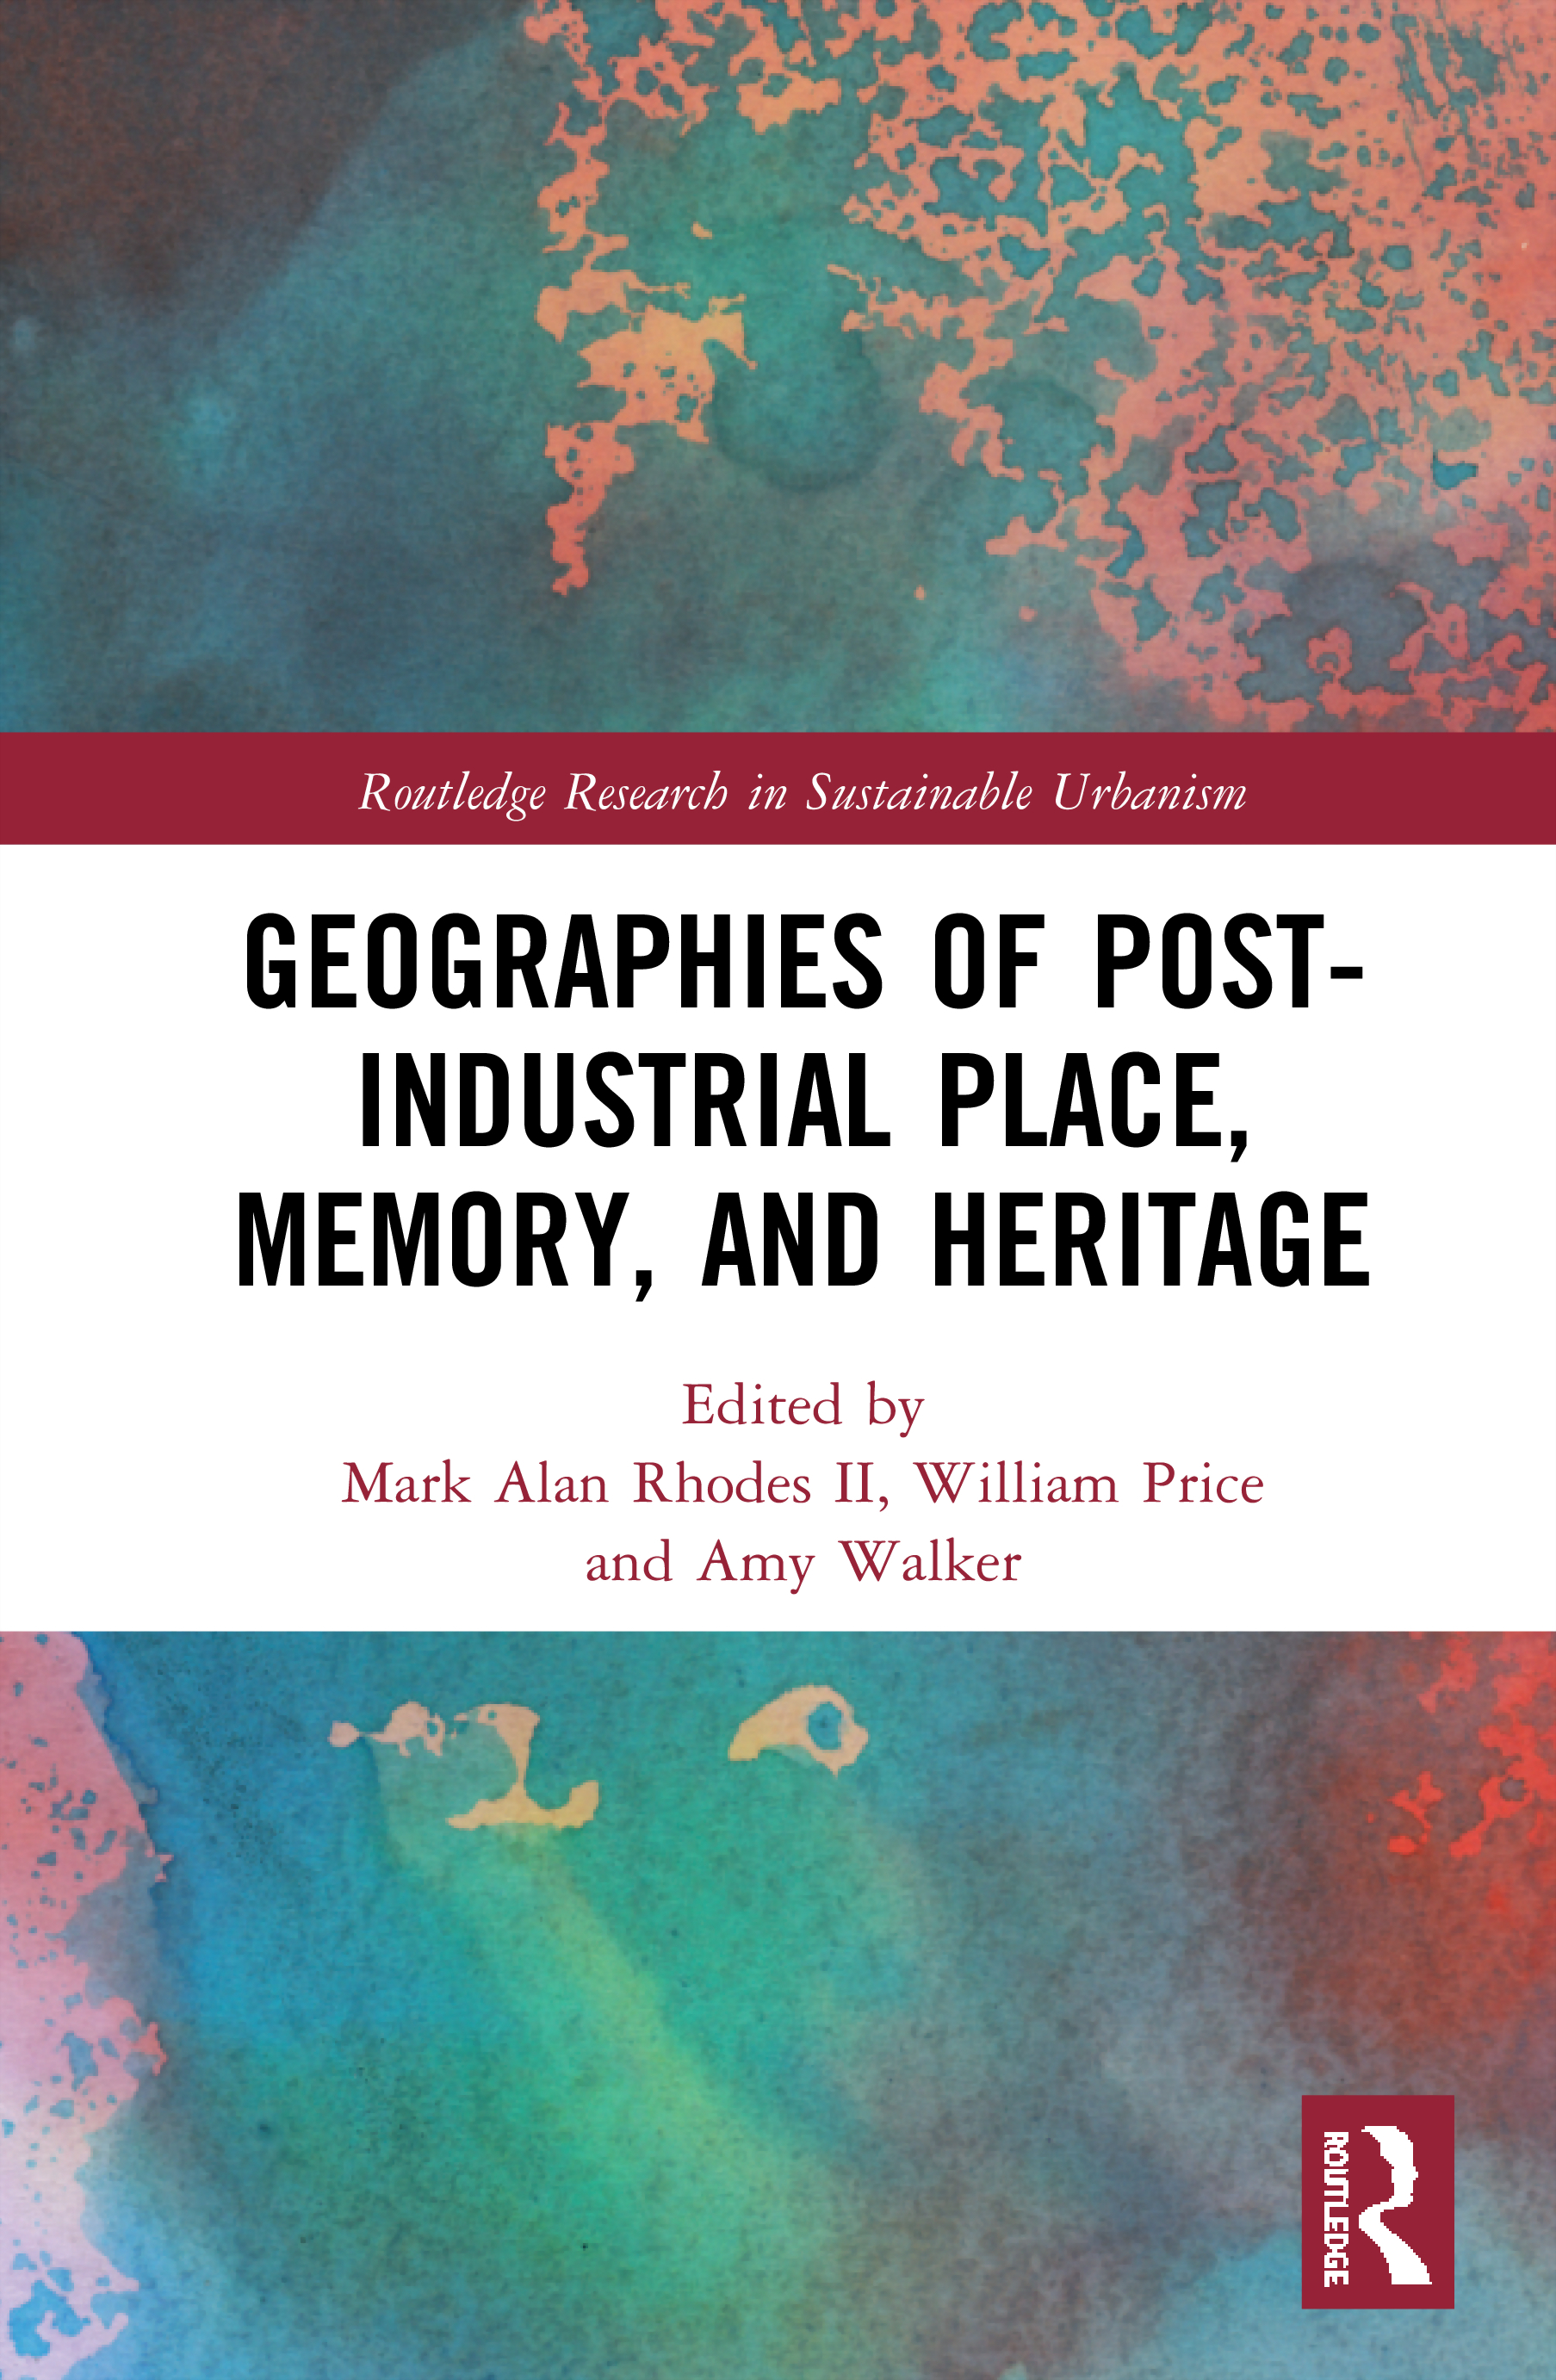 Post-Industrial Geographies cover image